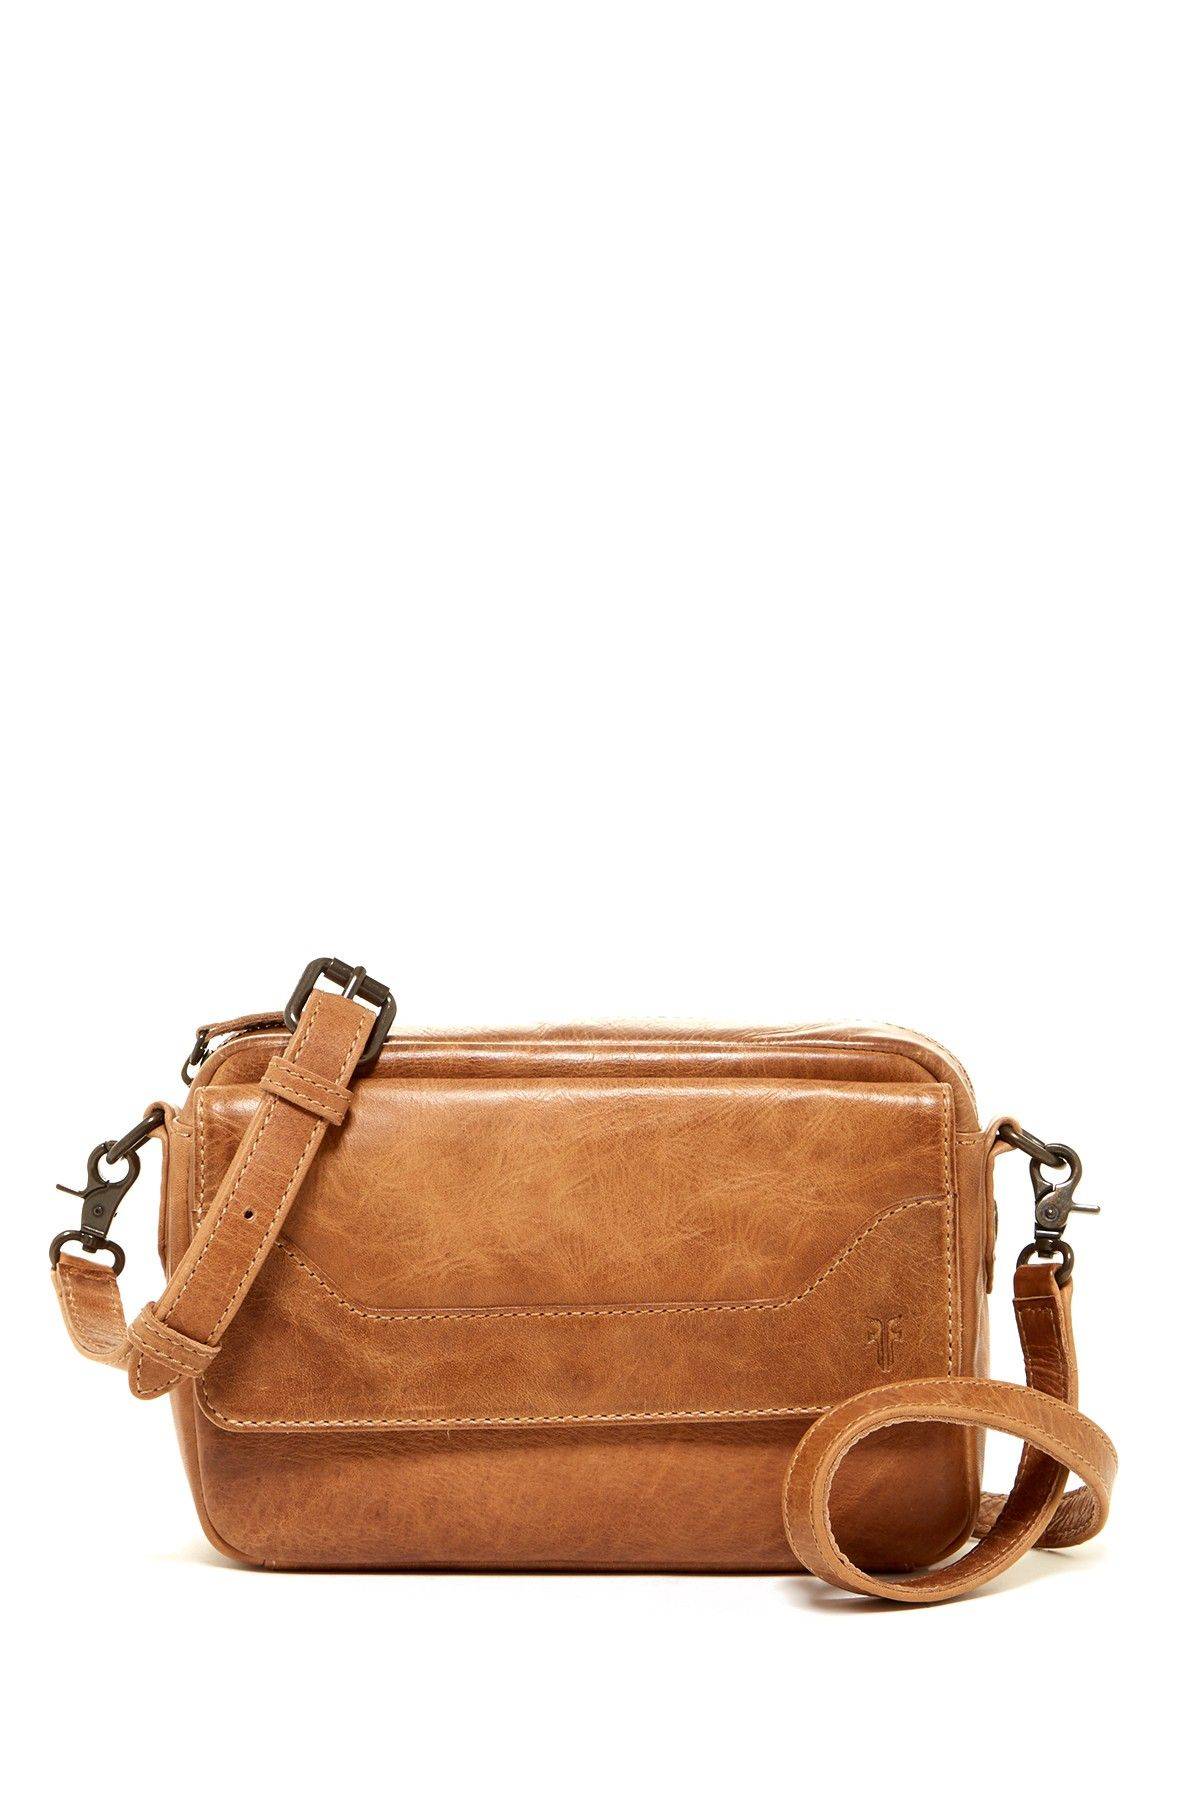 4576516eb940 Melissa Leather Camera Crossbody Bag by Frye on  nordstrom rack